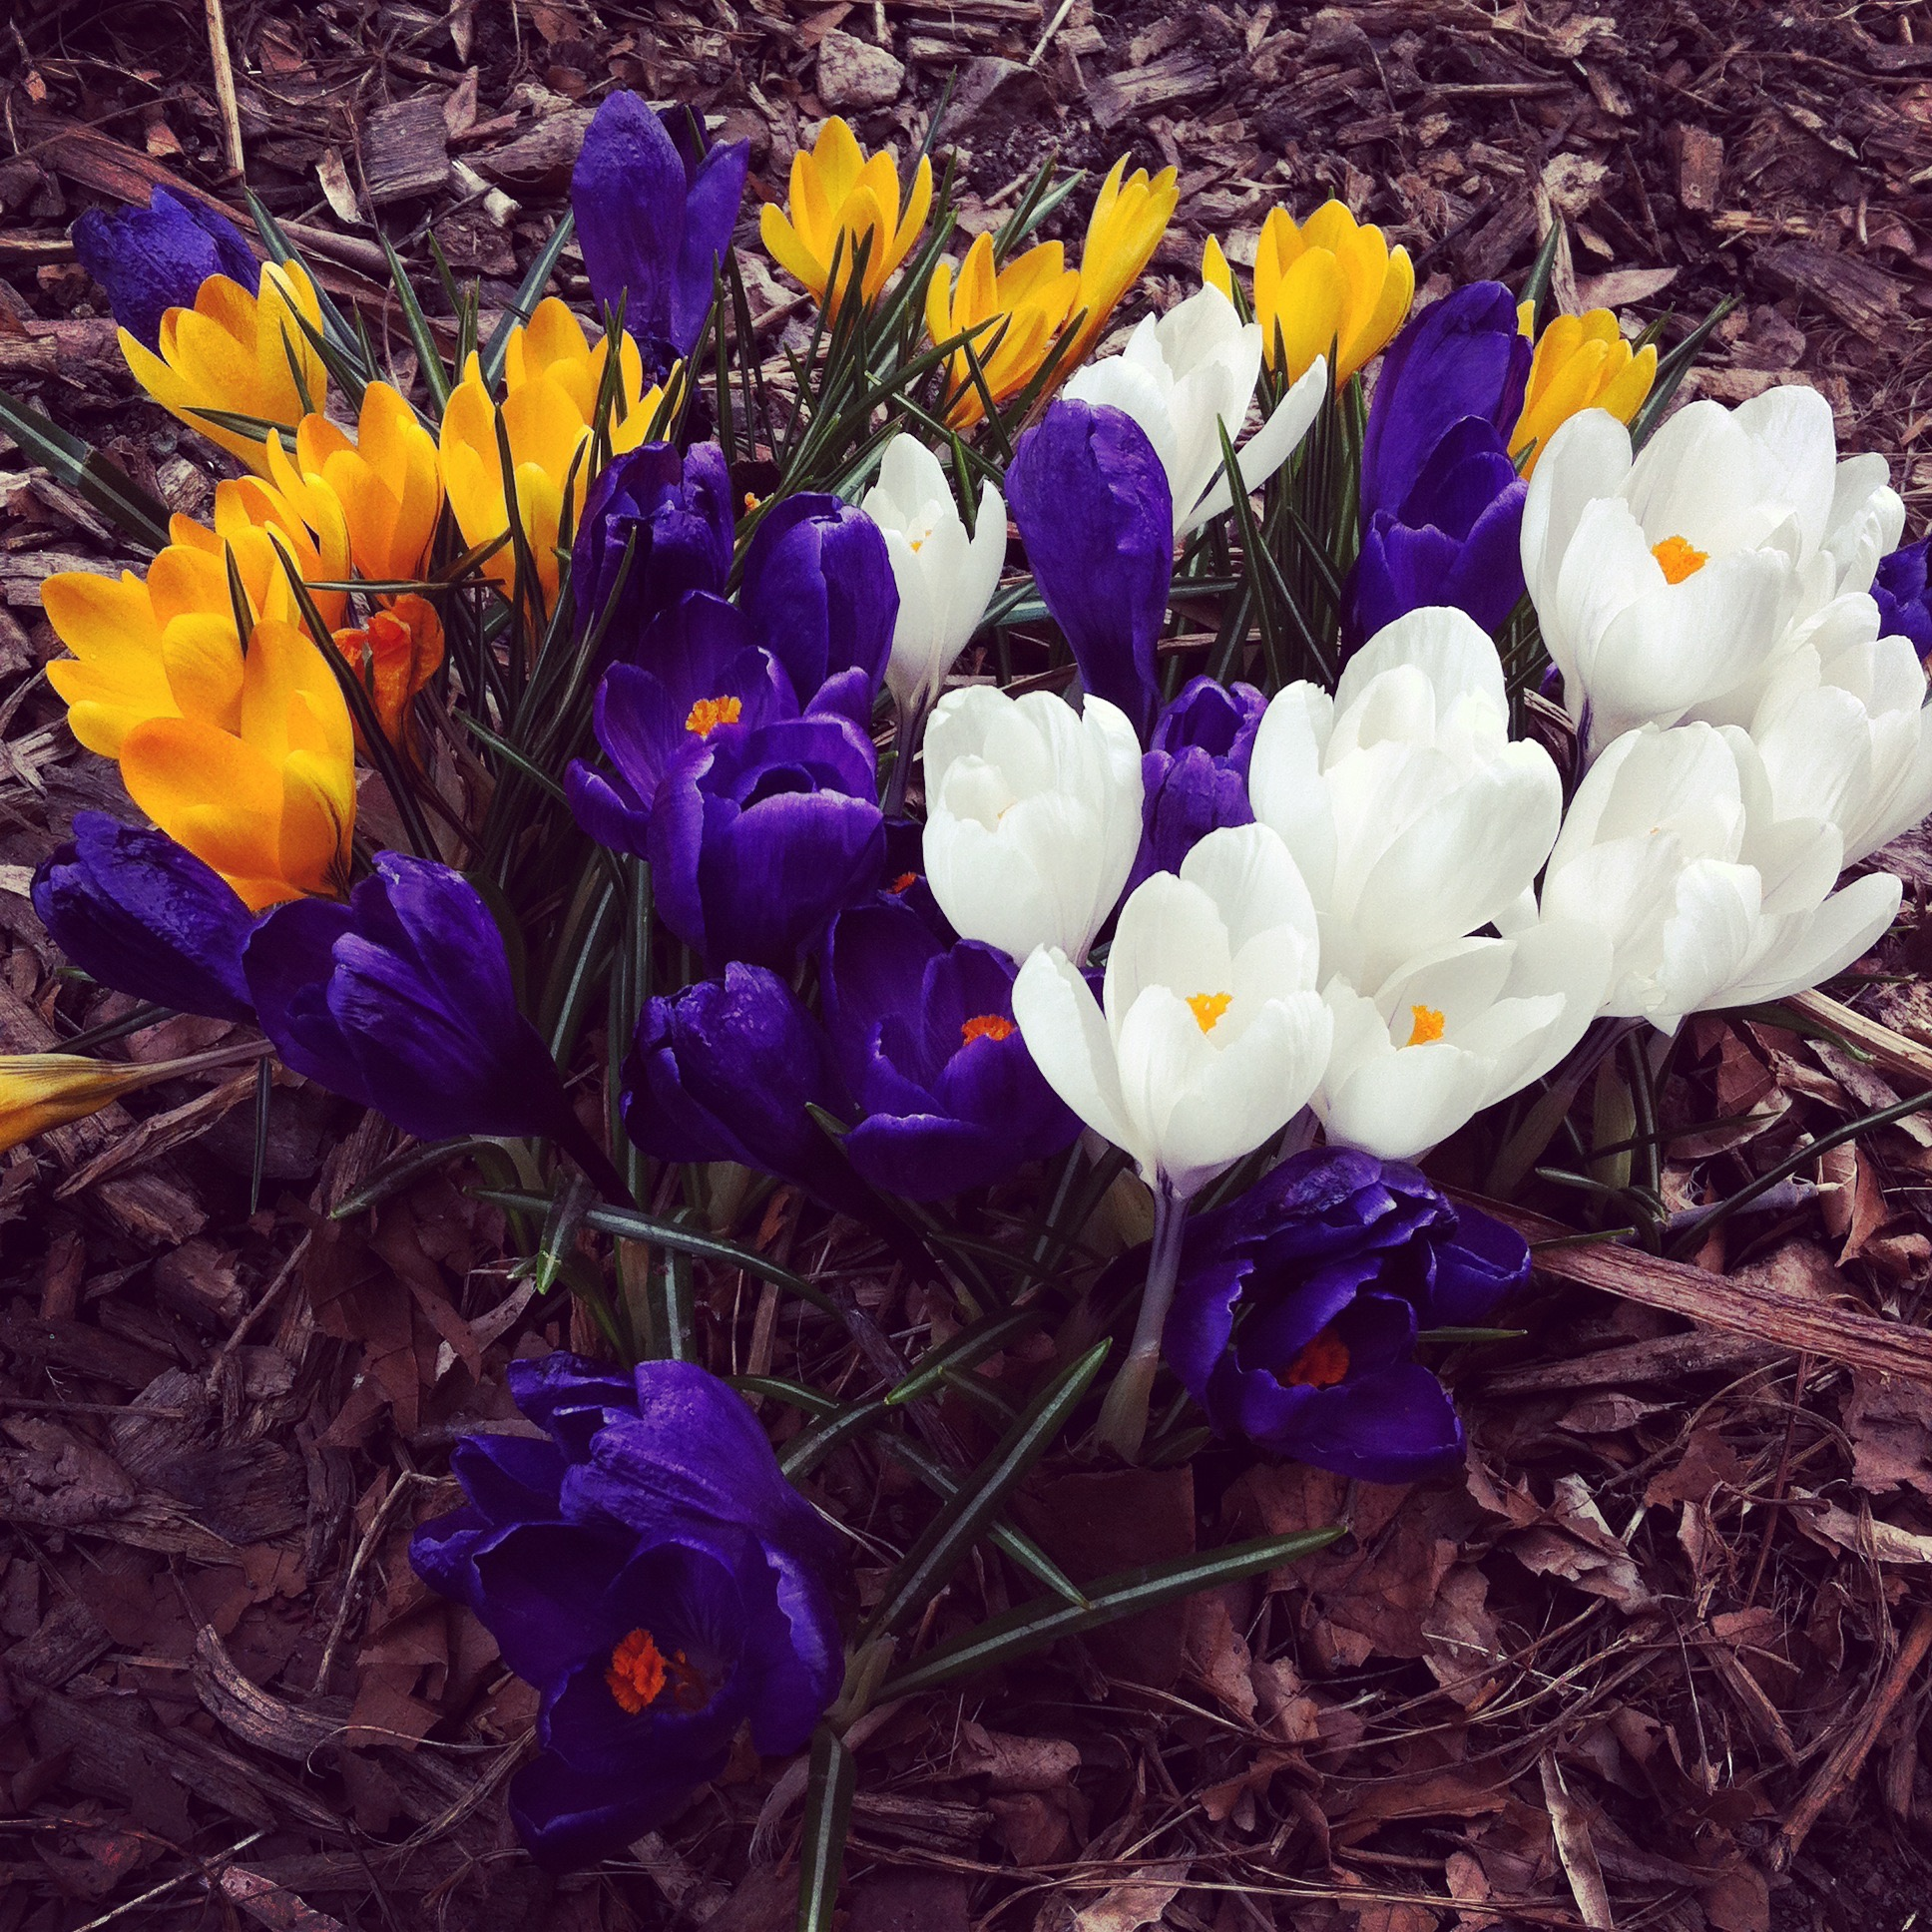 [image: The ground is covered in mulch. Bright yellow, purple, and white crocus flowers are blooming together.]